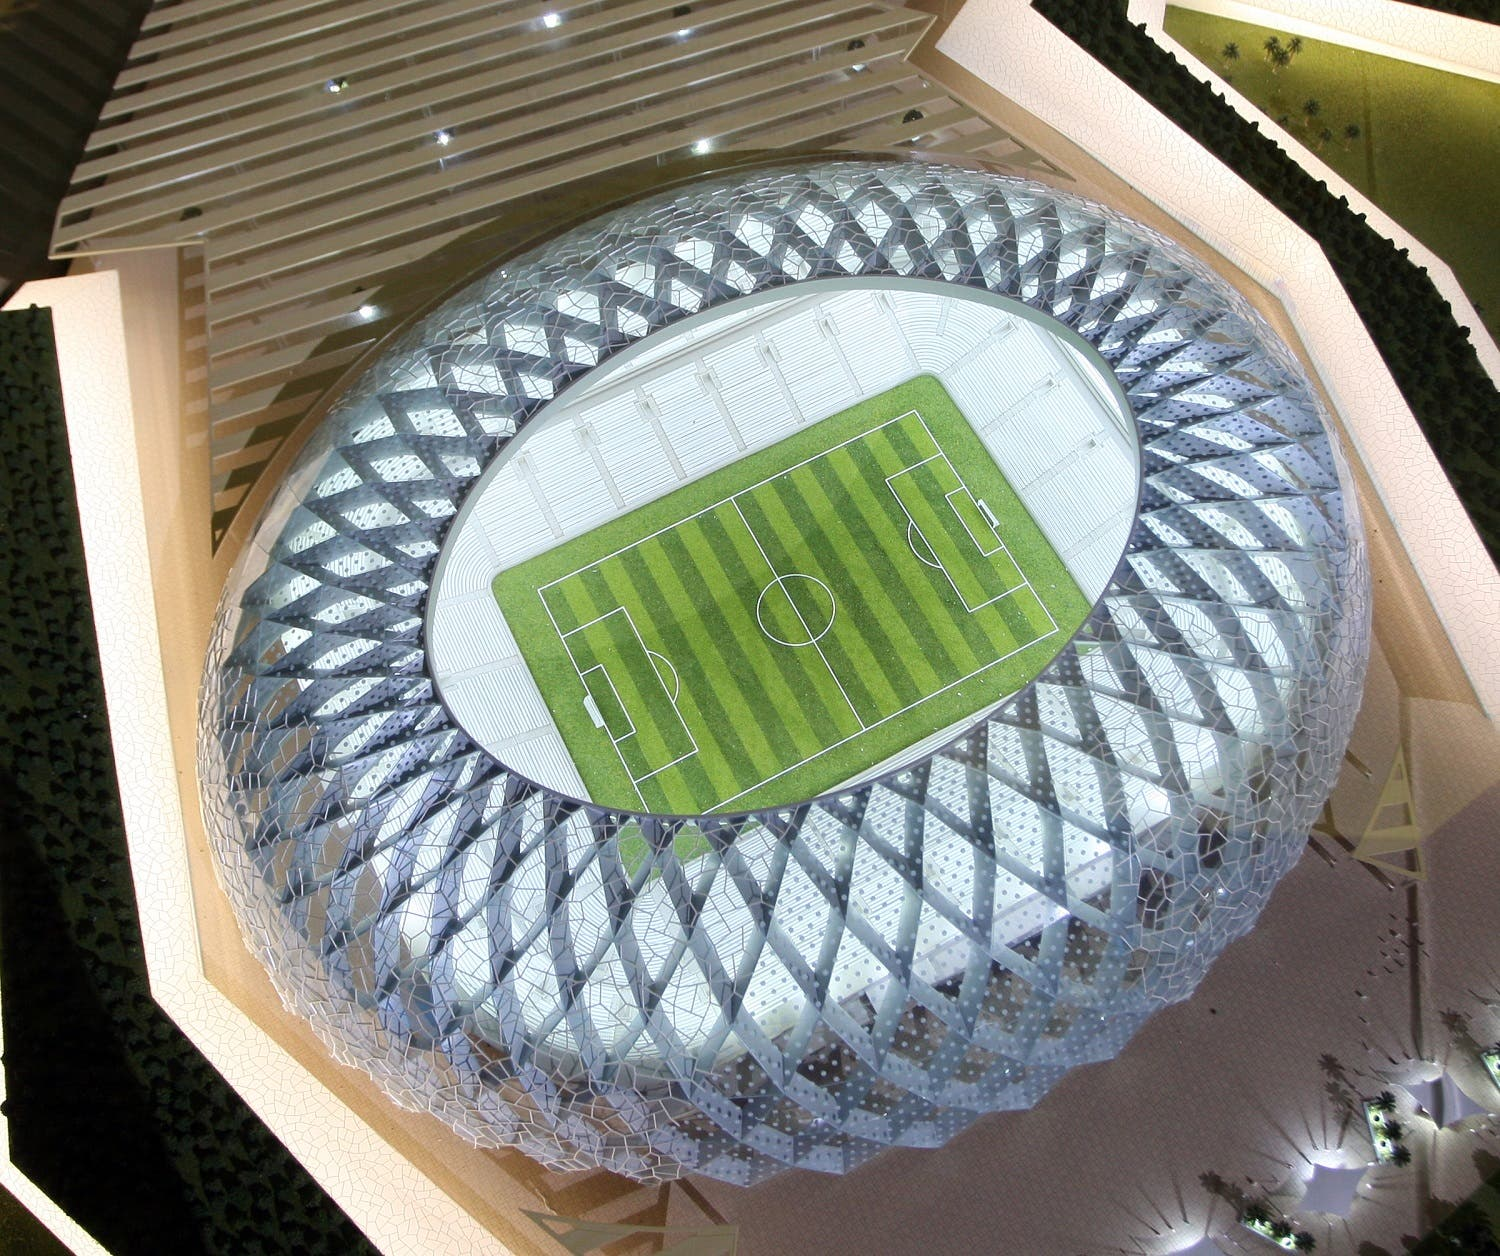 Qatar presents a model of its Al-Wakrah stadium as it bids to host the FIFA 2022 World Cup during the FIFA Inspection Tour for the country's bid, in Doha September 16, 2010 (AP Photo/Osama Faisal)